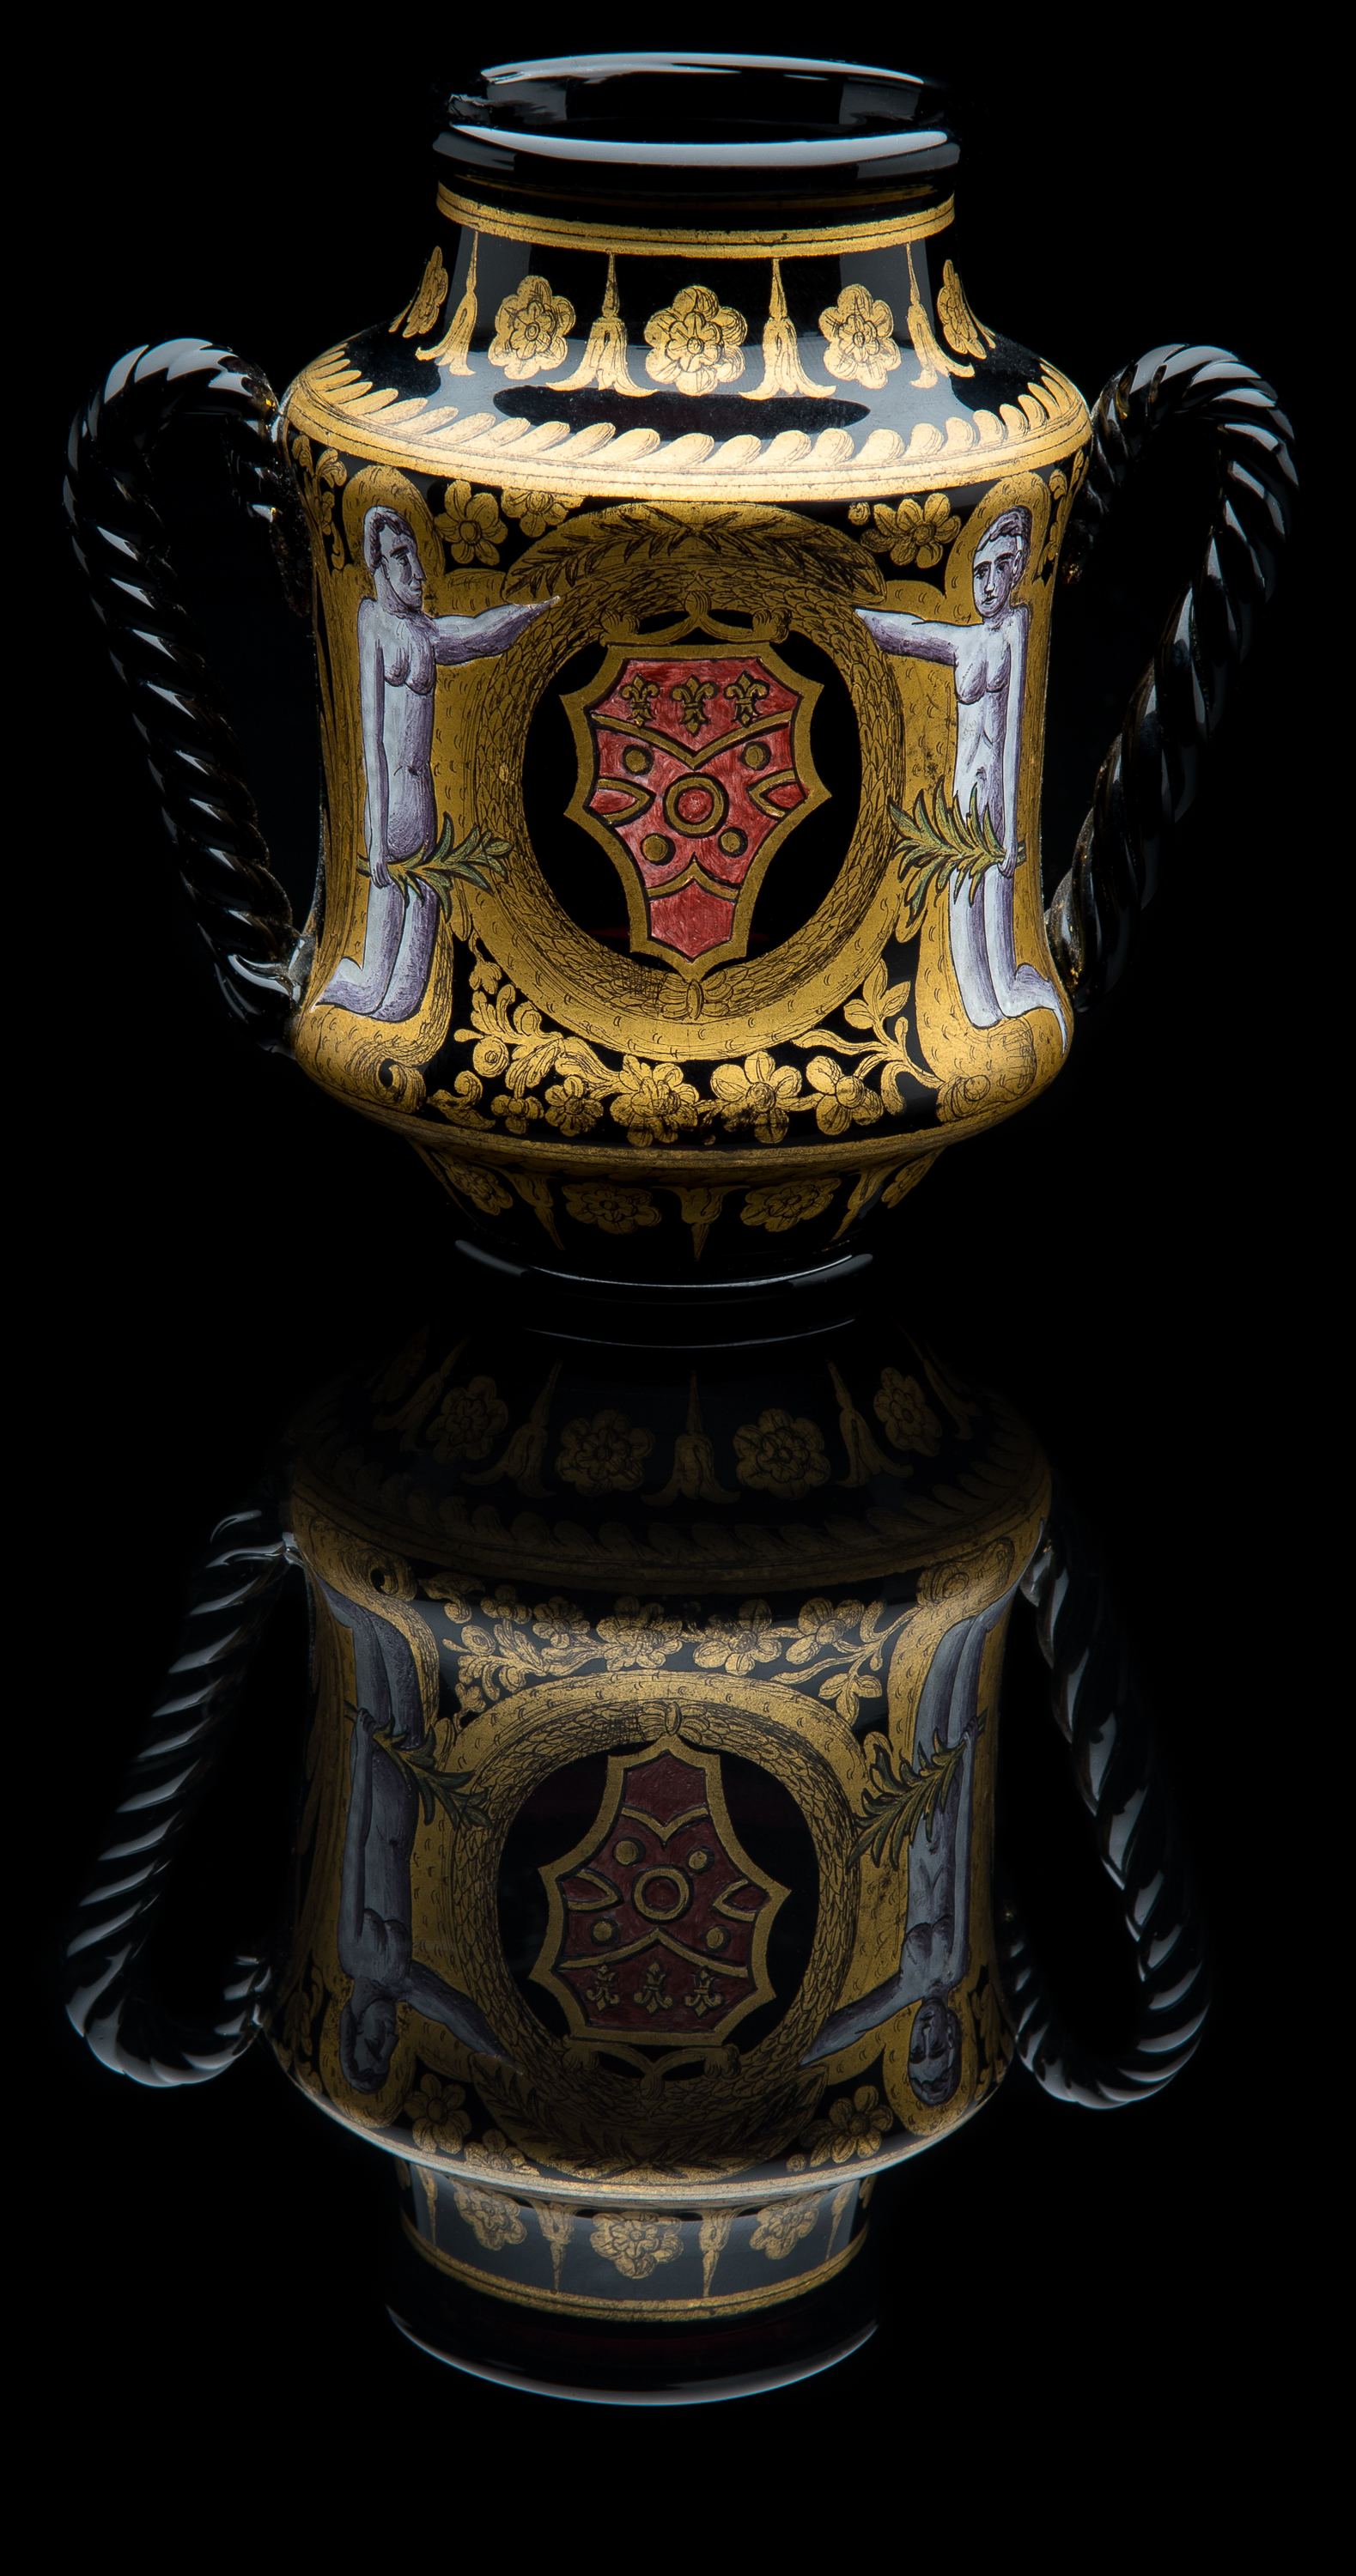 Unknown,  Amethyst Handled Jar with Enamel and Gilt  (glass, 5.25 inches), VV.1015